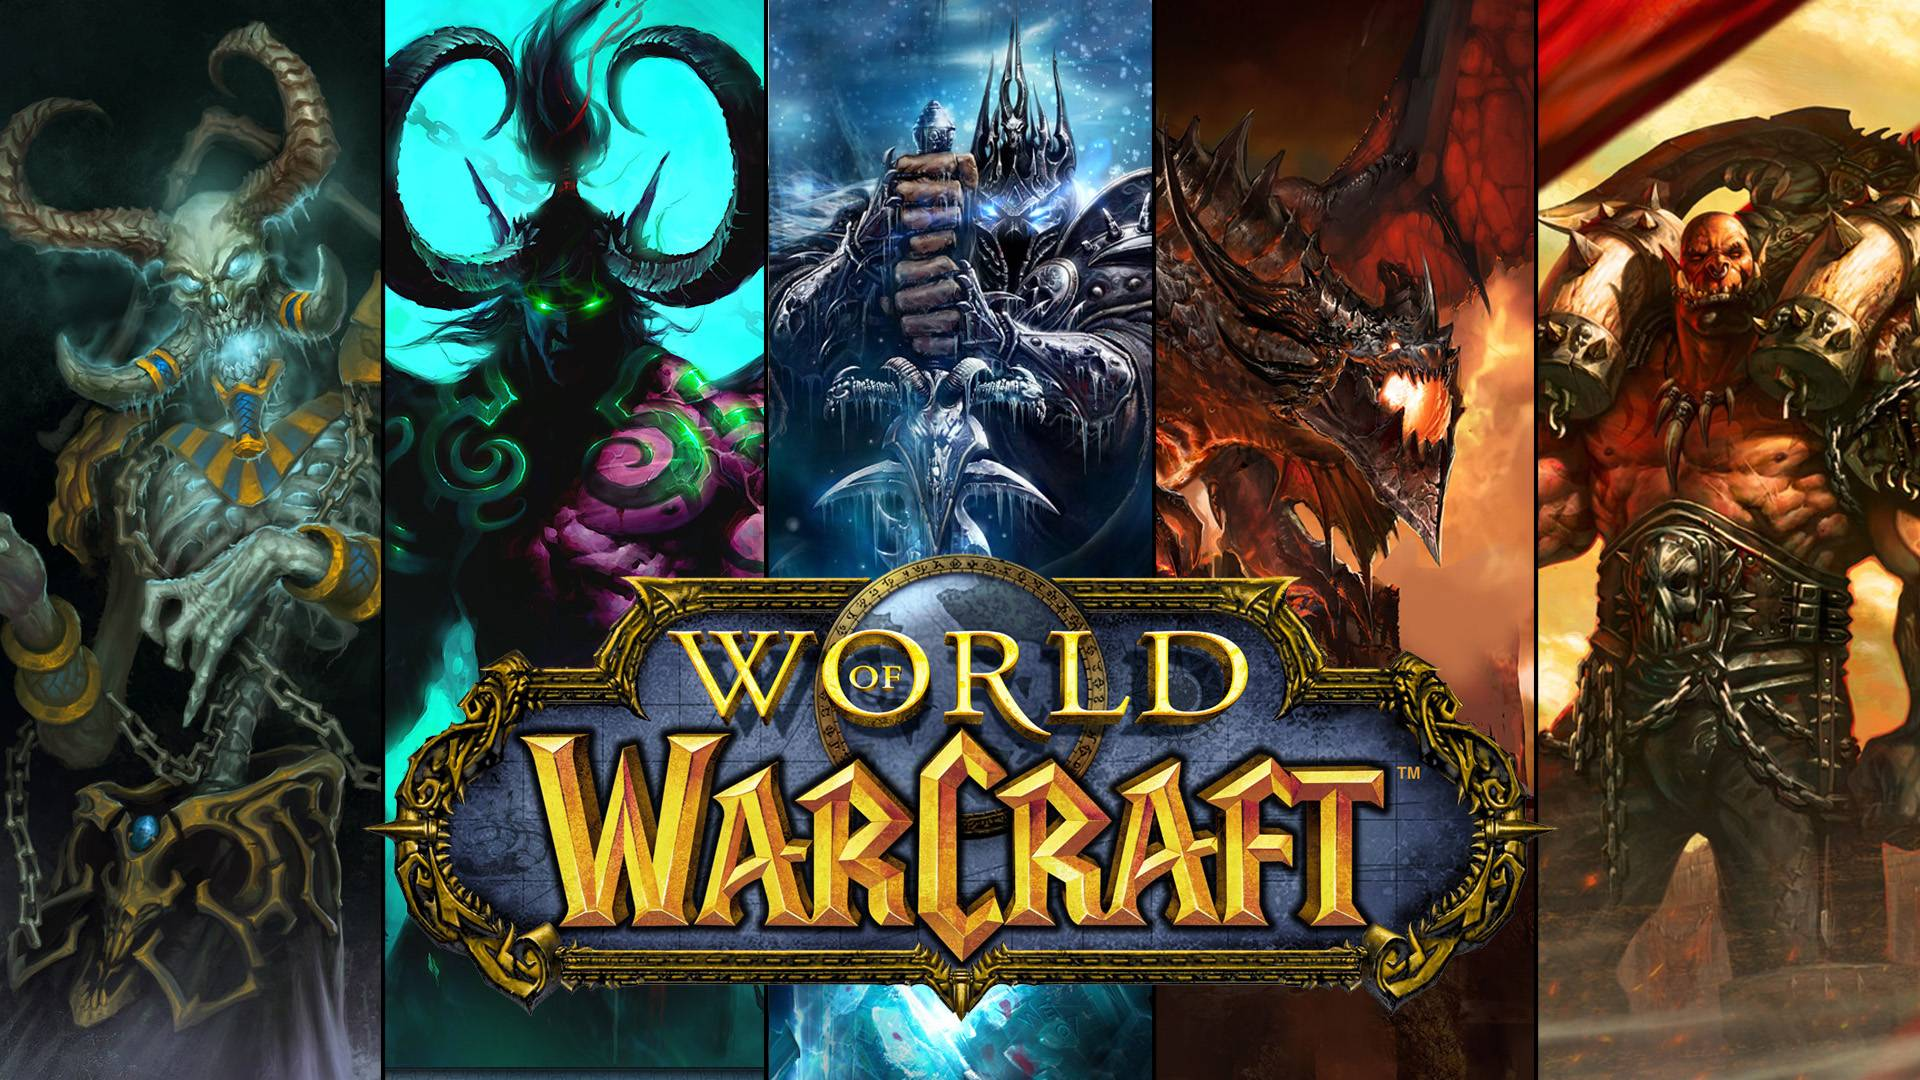 World of Warcraft, mi virgohistoria